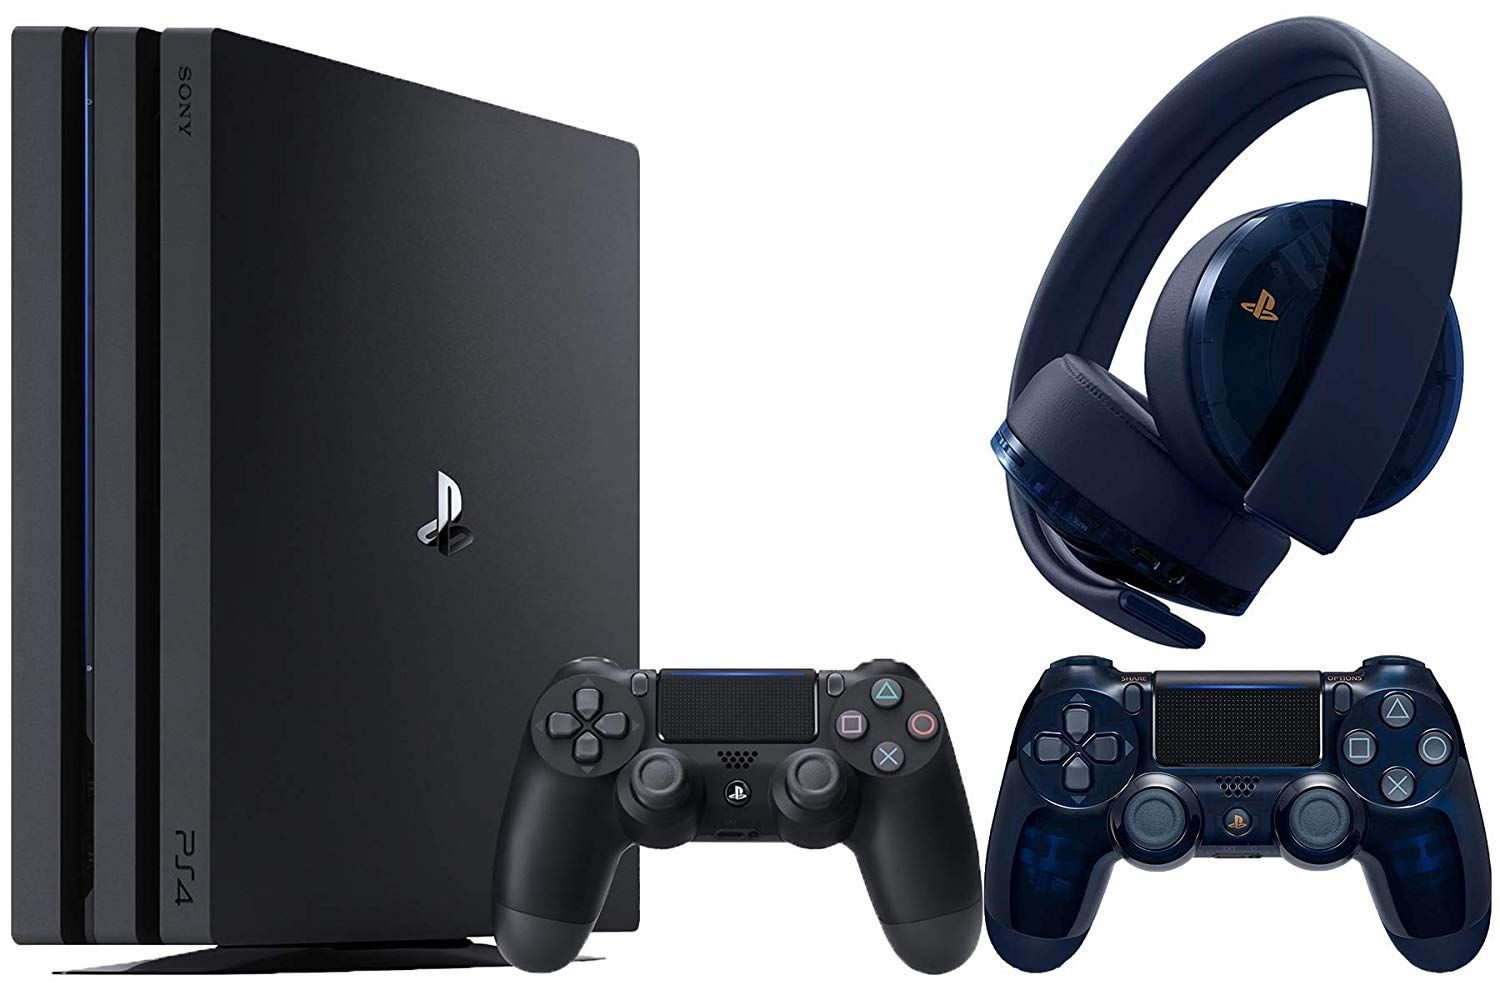 Playstation from Ancient